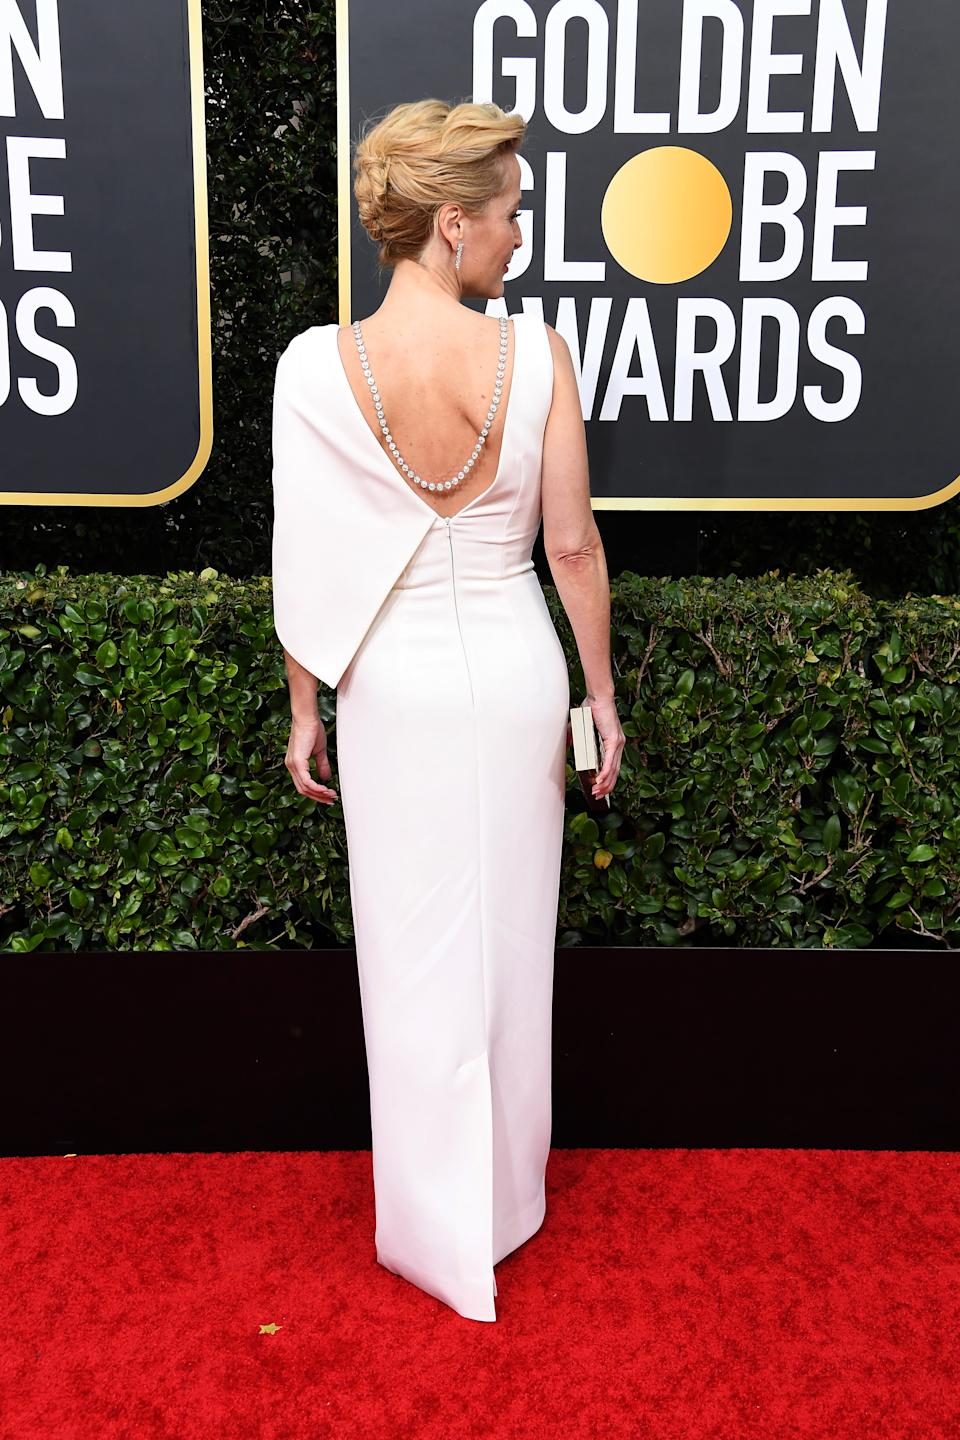 The dress featured an open back with jewelled details. (Photo by Steve Granitz/WireImage)